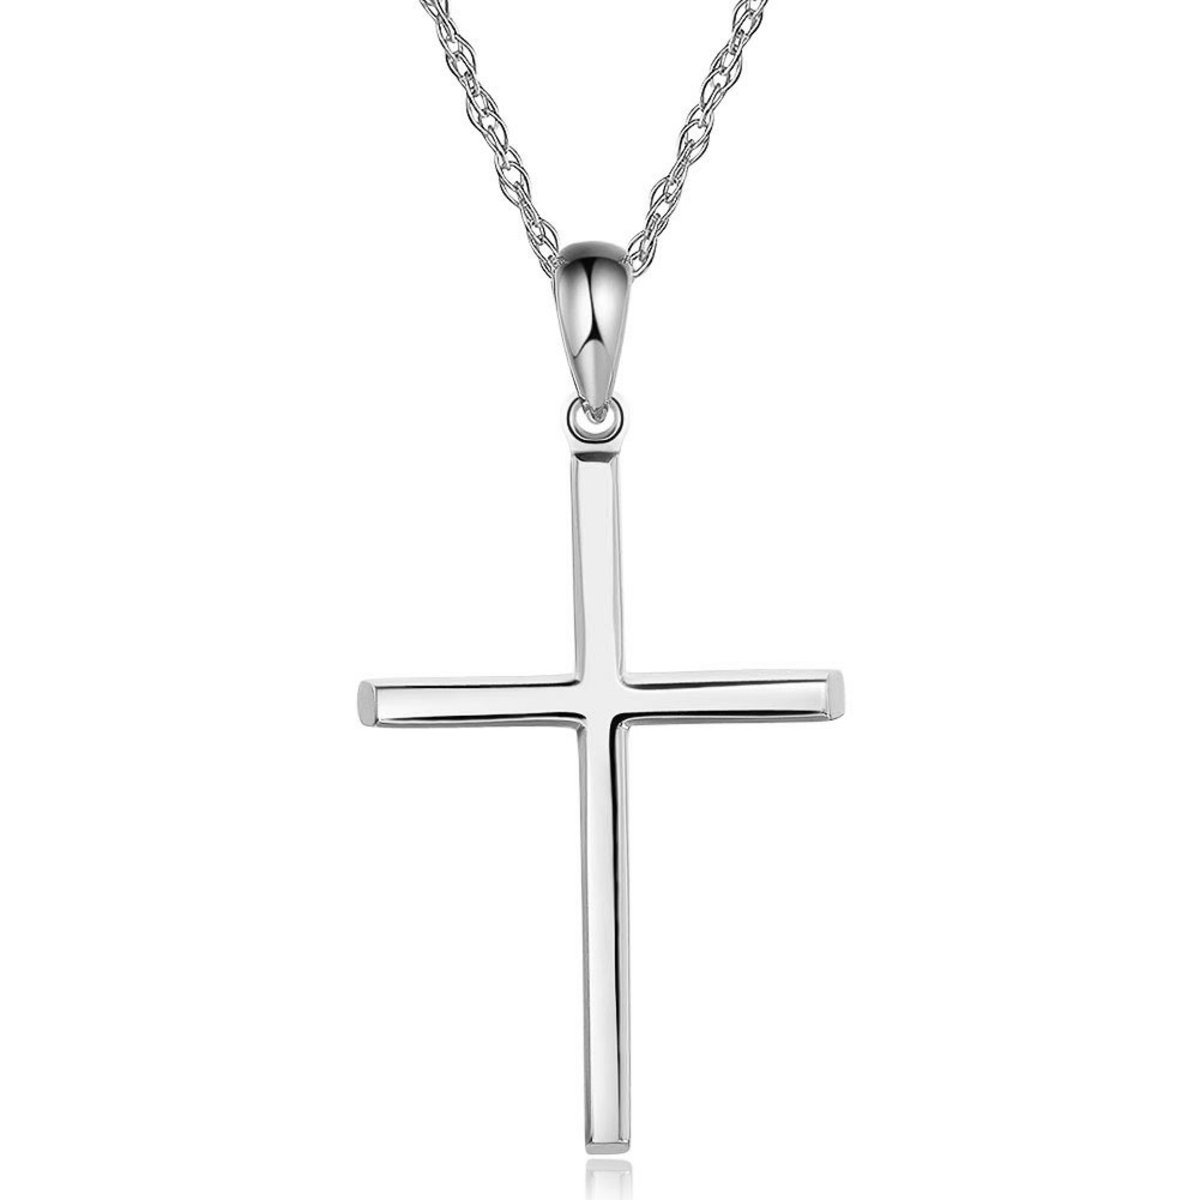 14K/ 585 White Gold Cross Pendant with Necklace